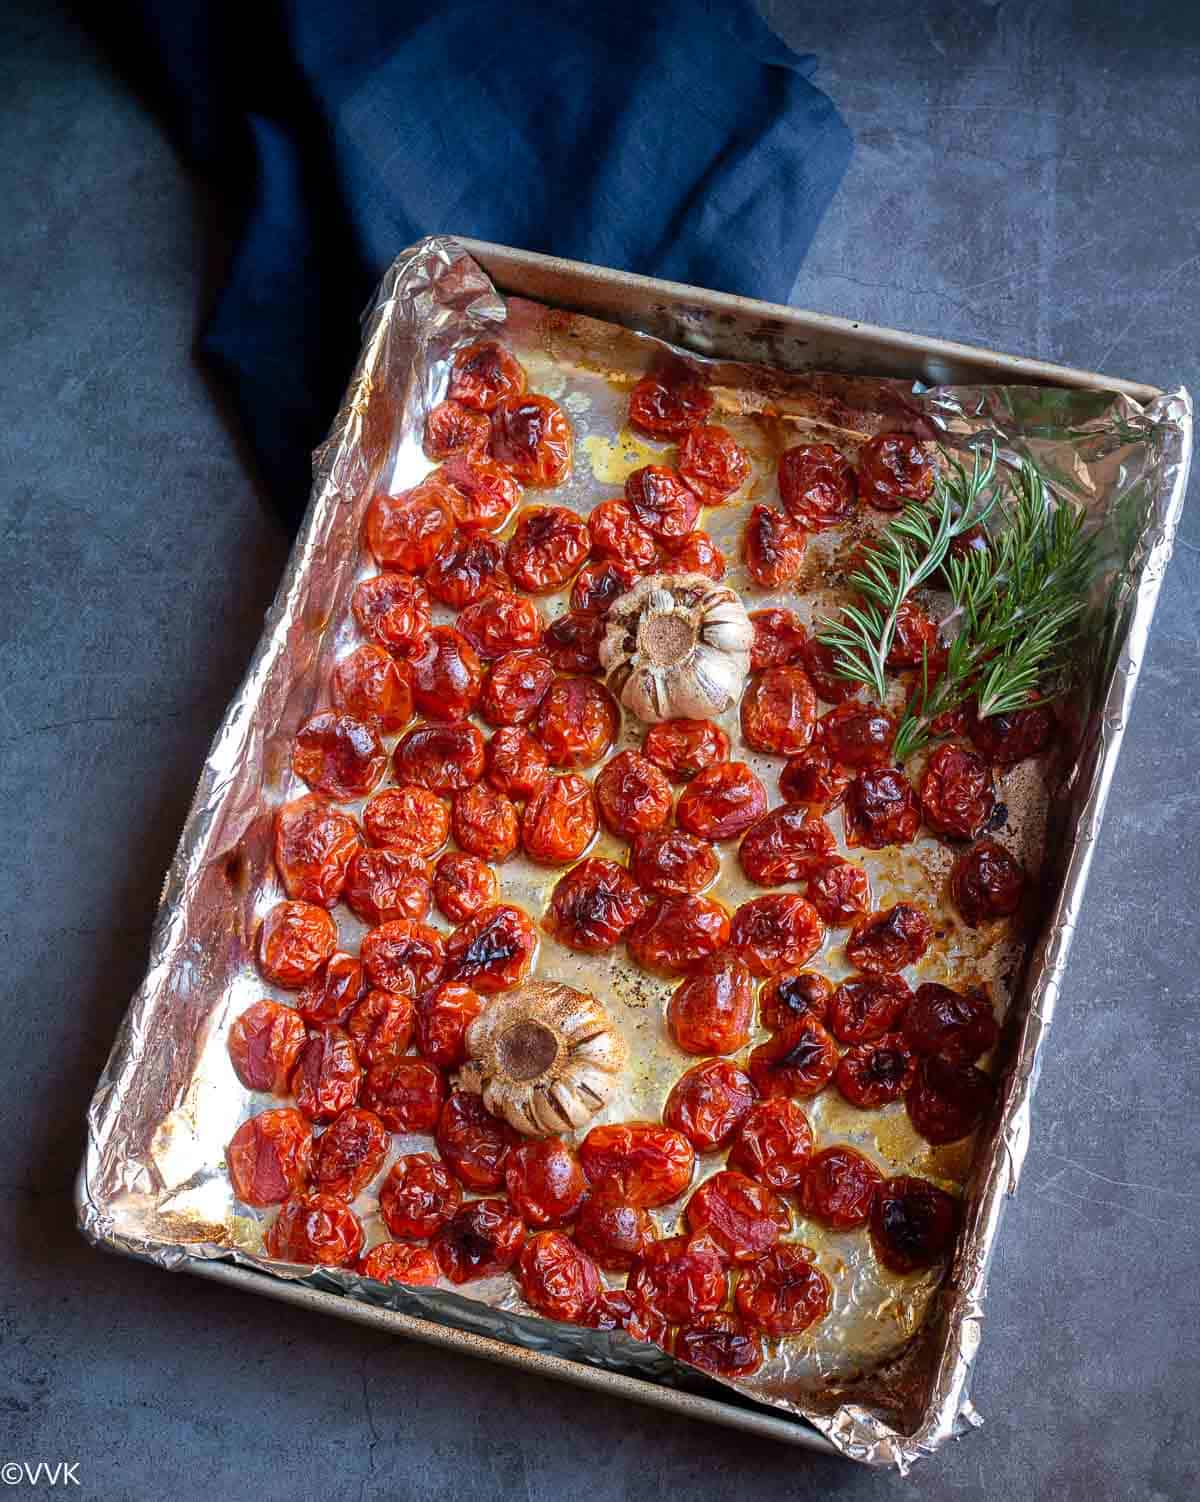 oven roasted tomatoes placed on baking tray with rosemary sprigs